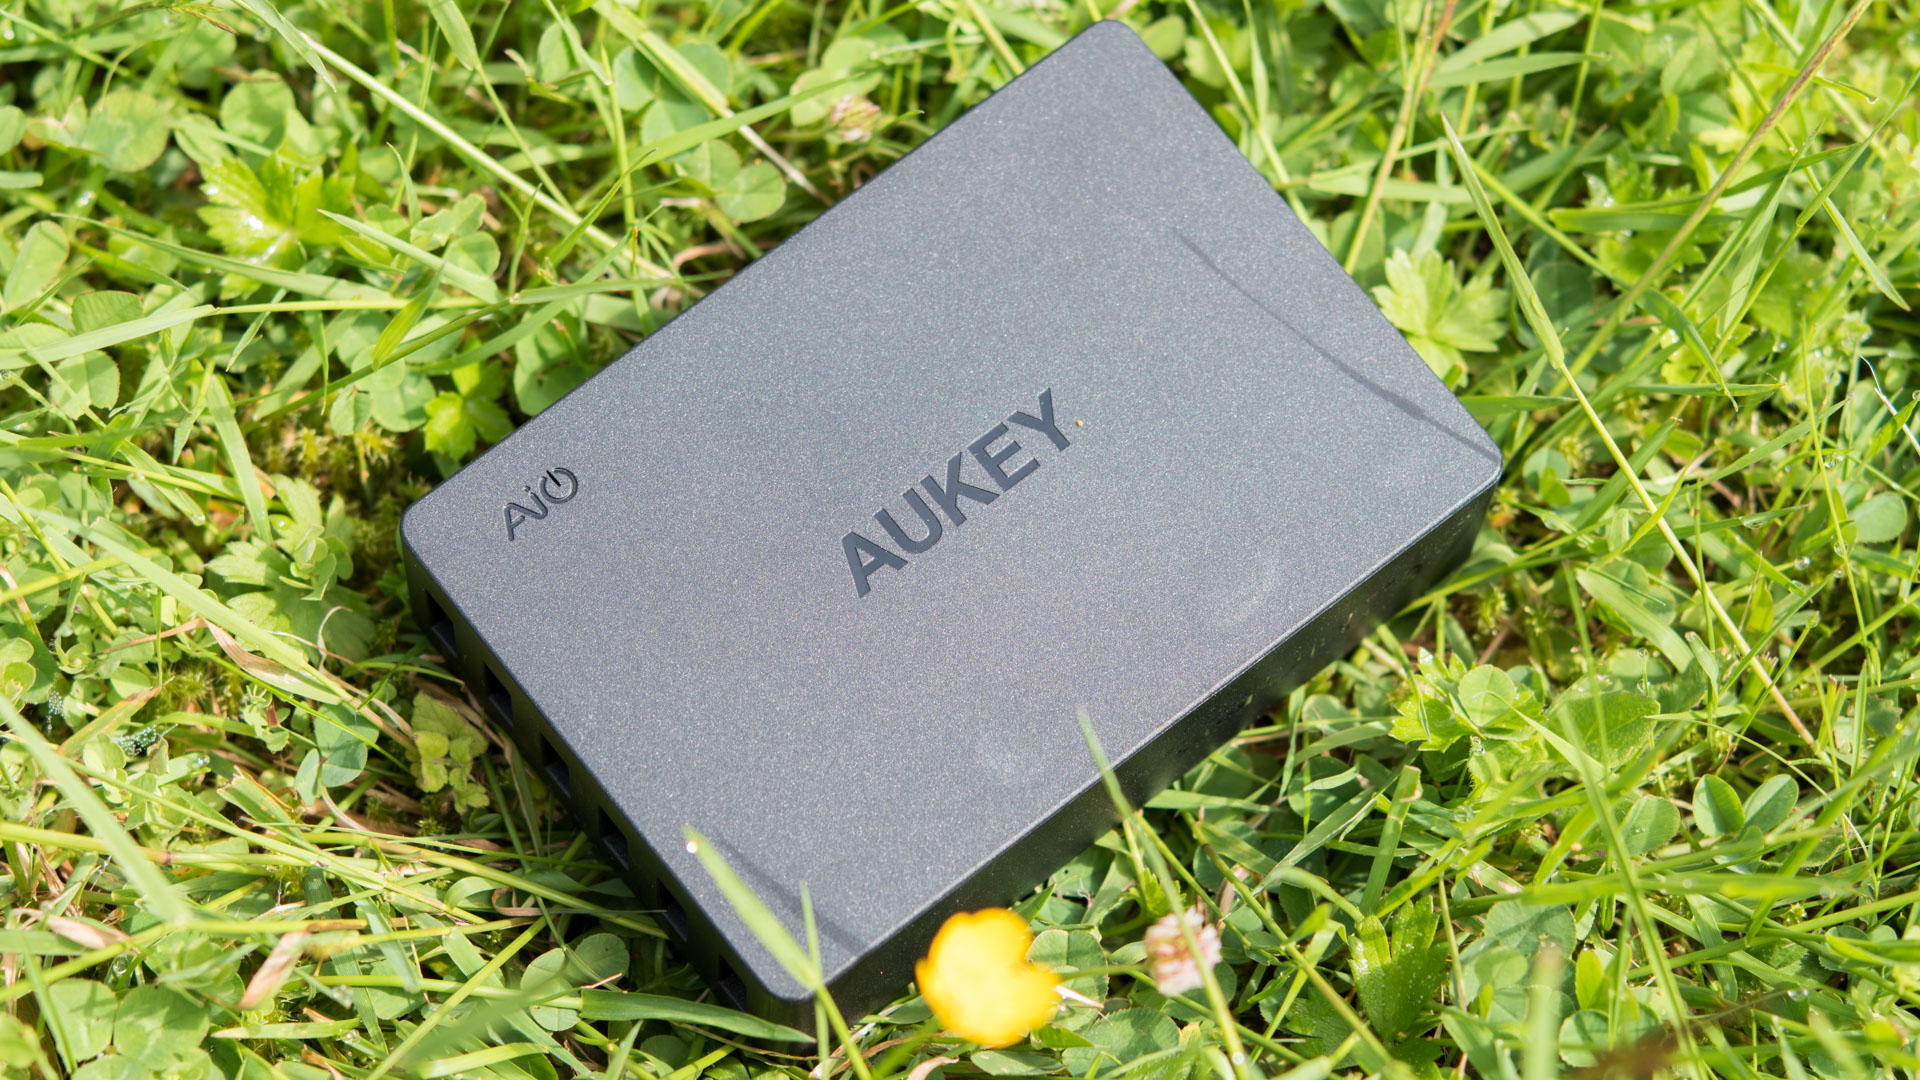 aukey pa t11 60w 6 port ladeger t mit zwei quick charge 3. Black Bedroom Furniture Sets. Home Design Ideas